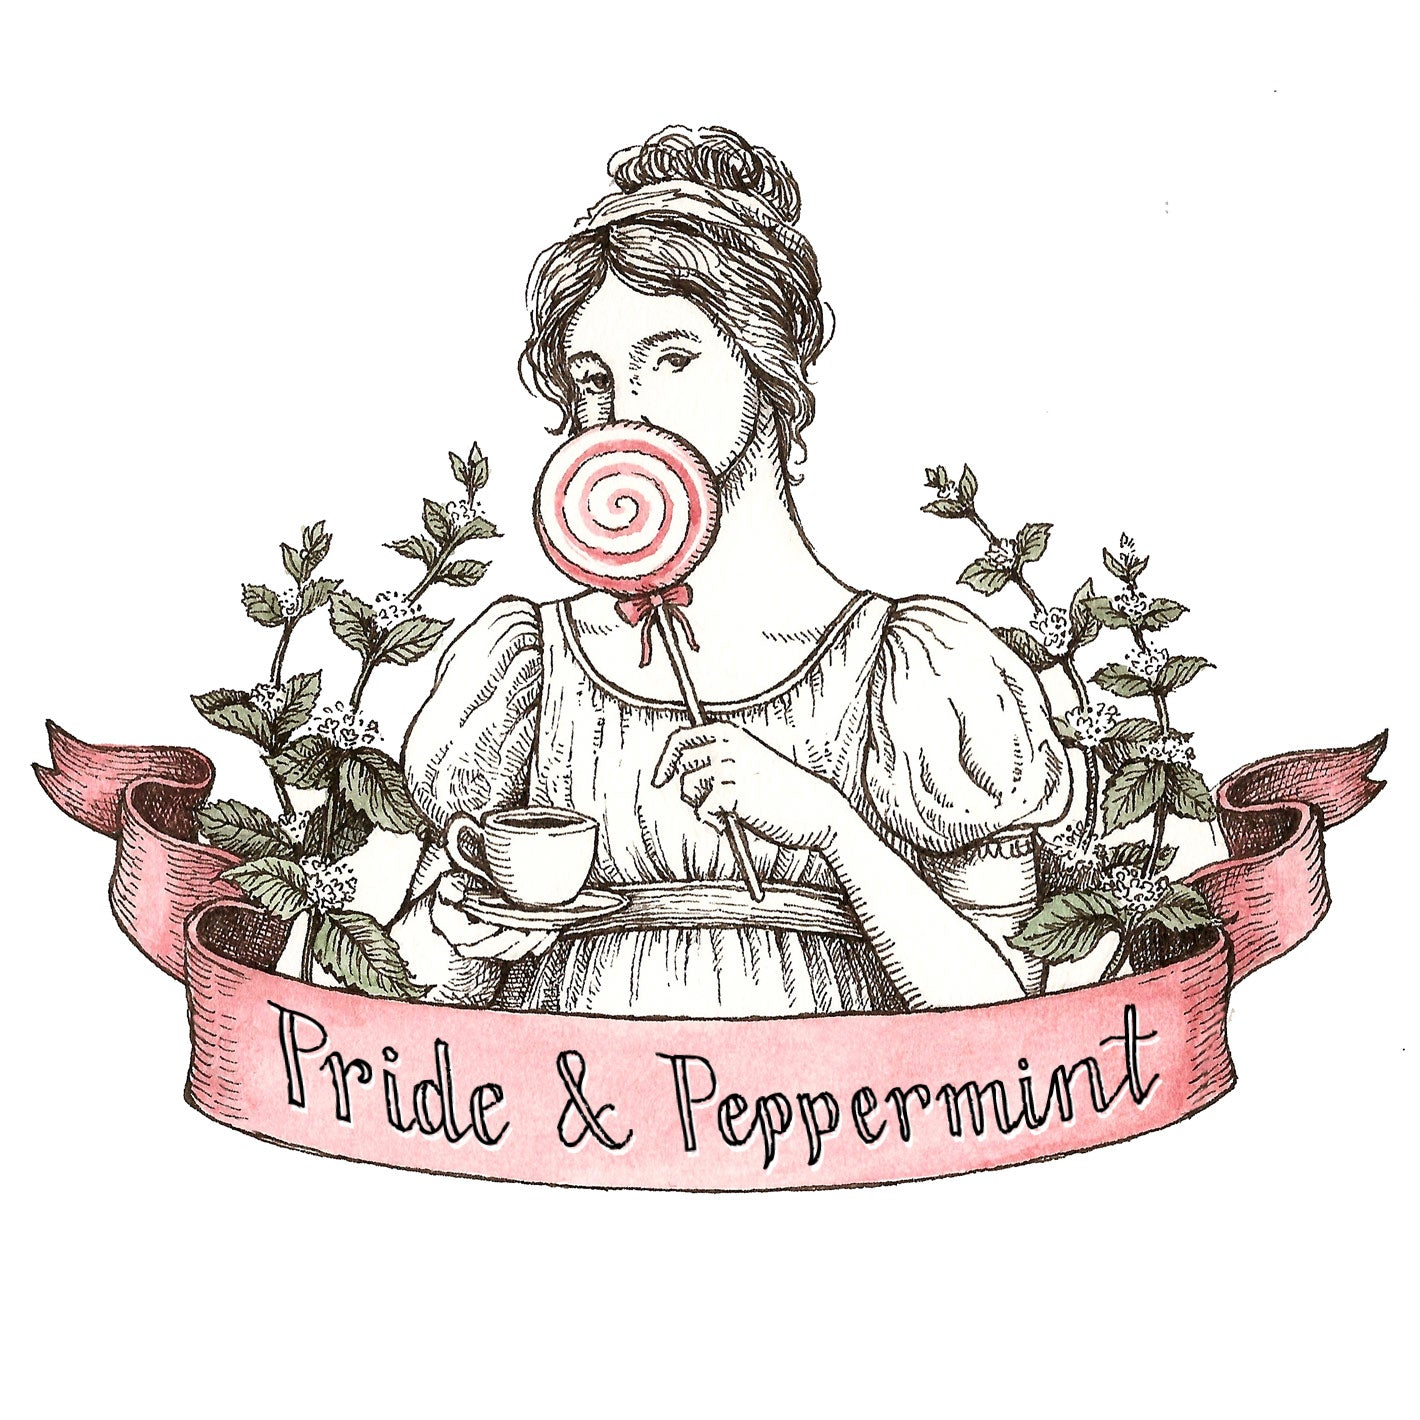 Pride and Peppermint - Coming soon!